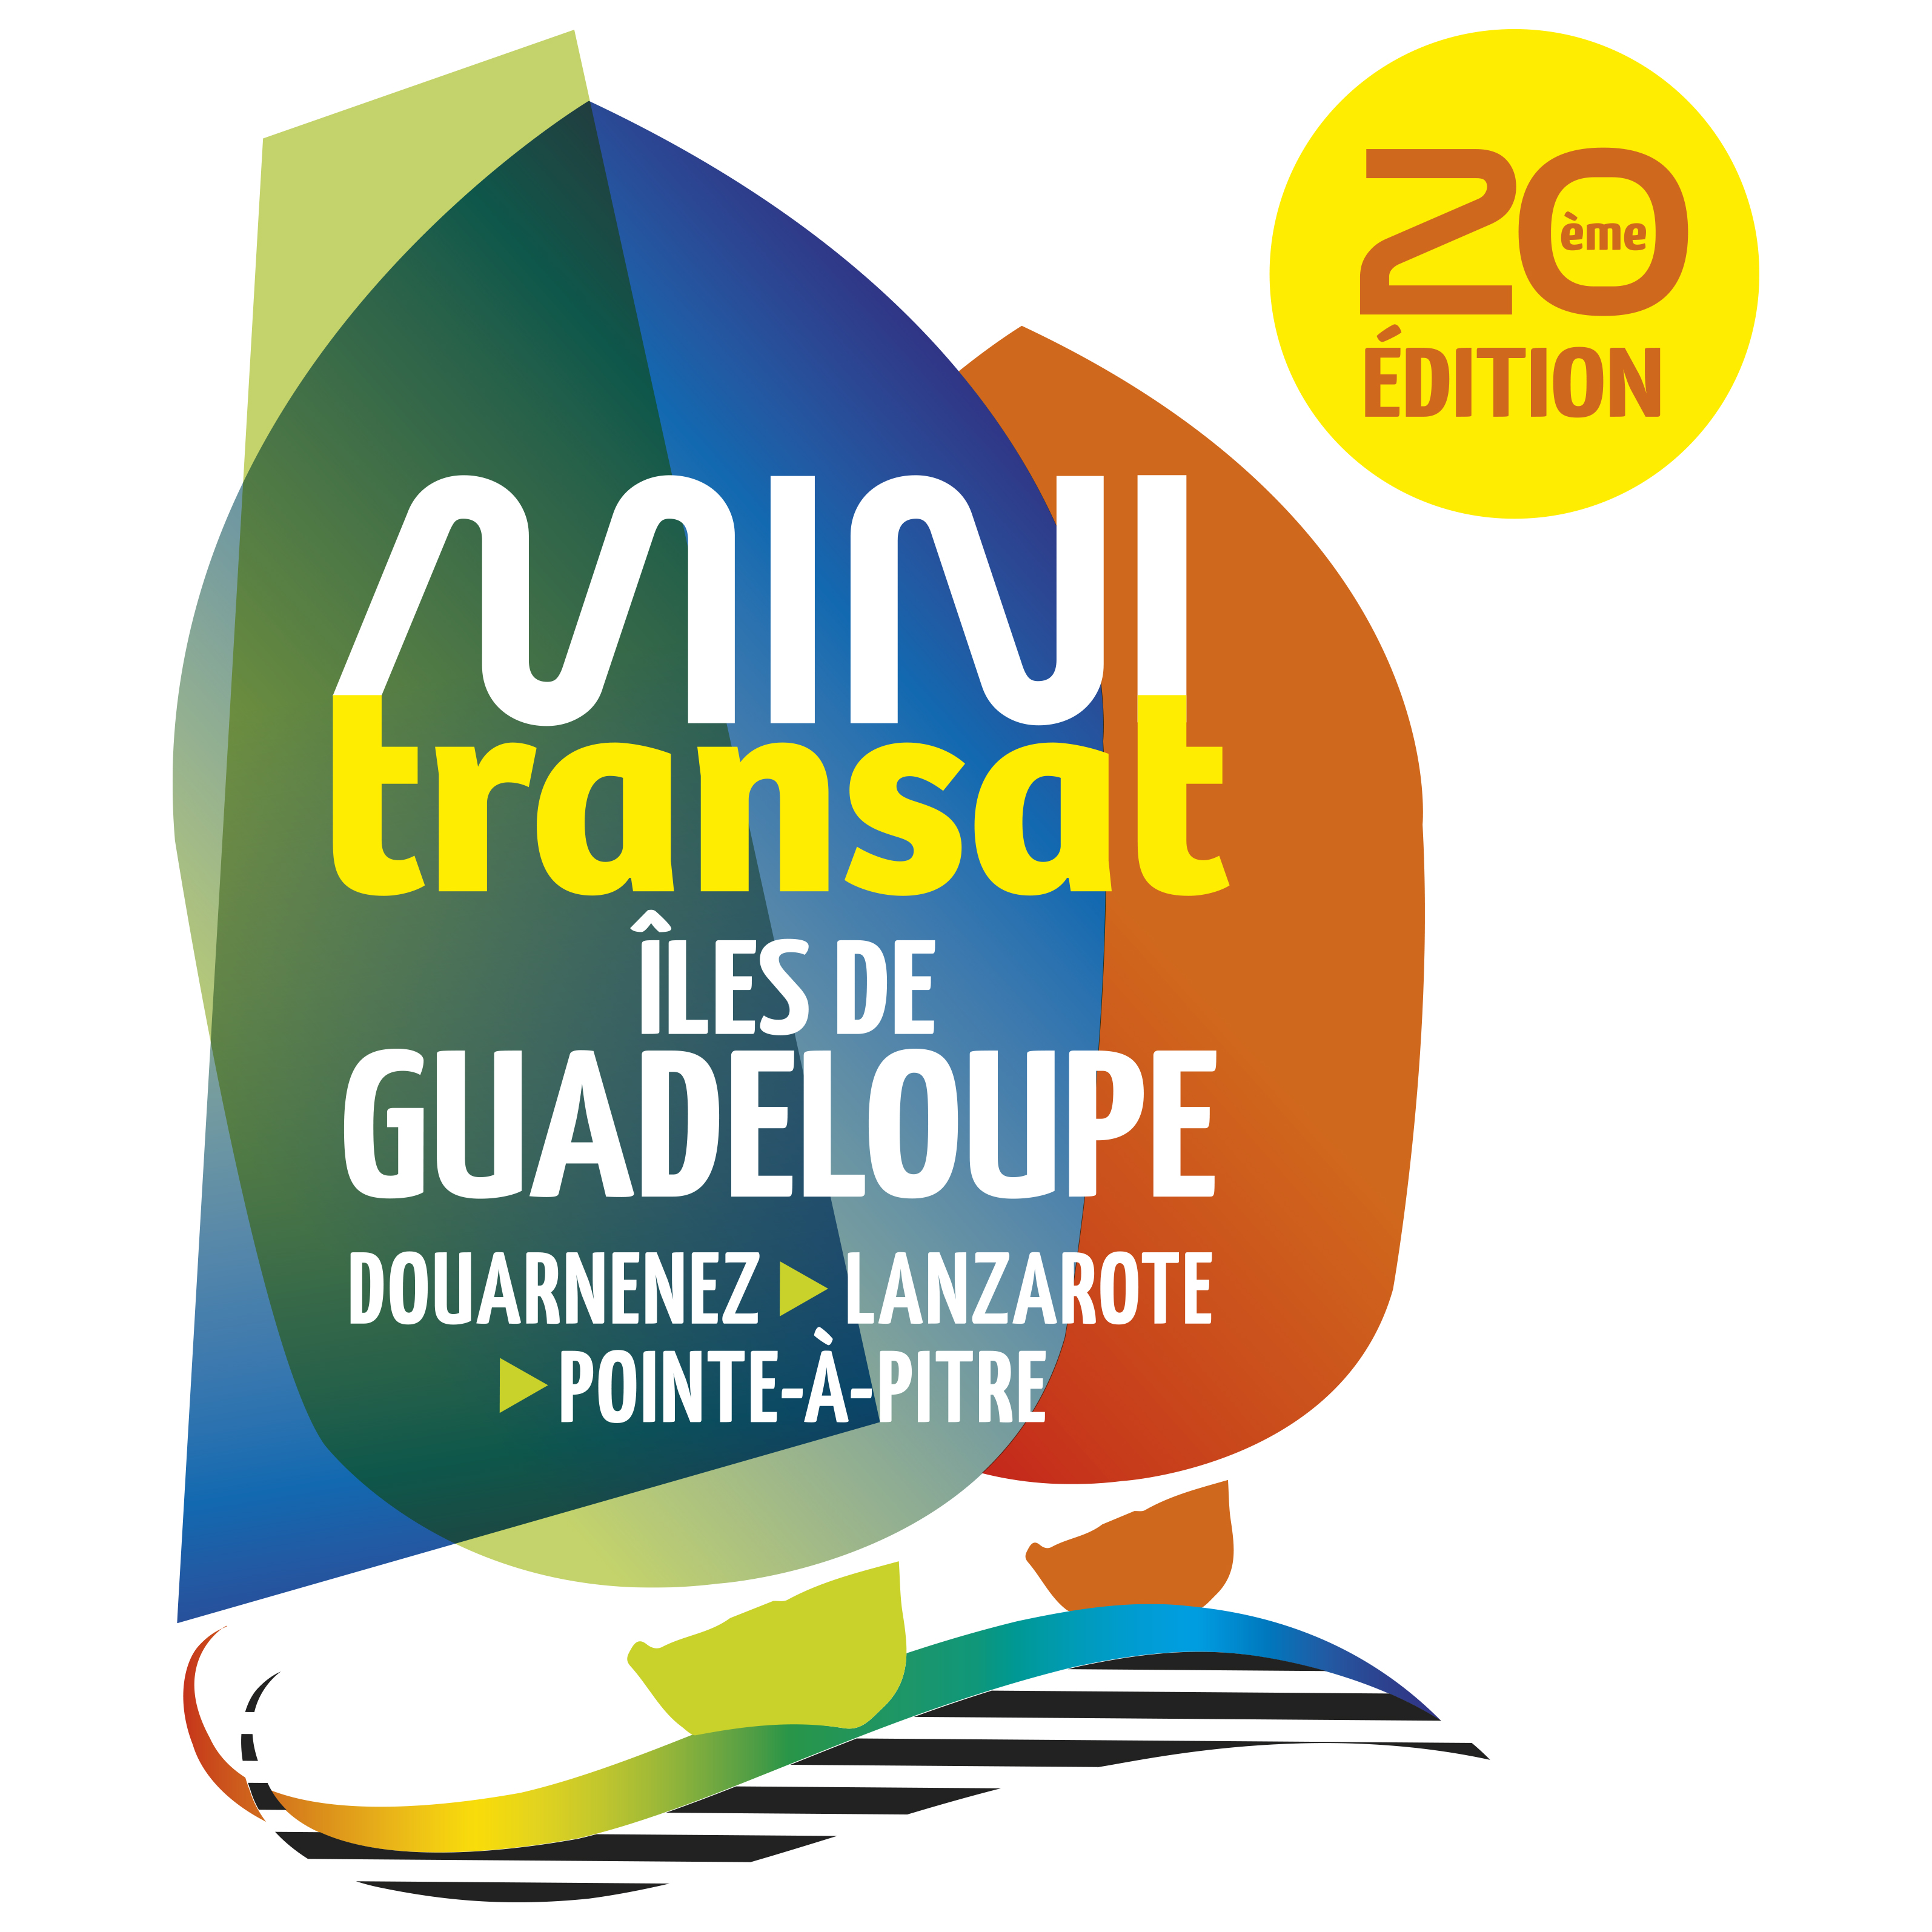 LOGO_MINI_TRANSAT_ILES_DE_GUADELOUPE_vague_3_couleurs.jpg